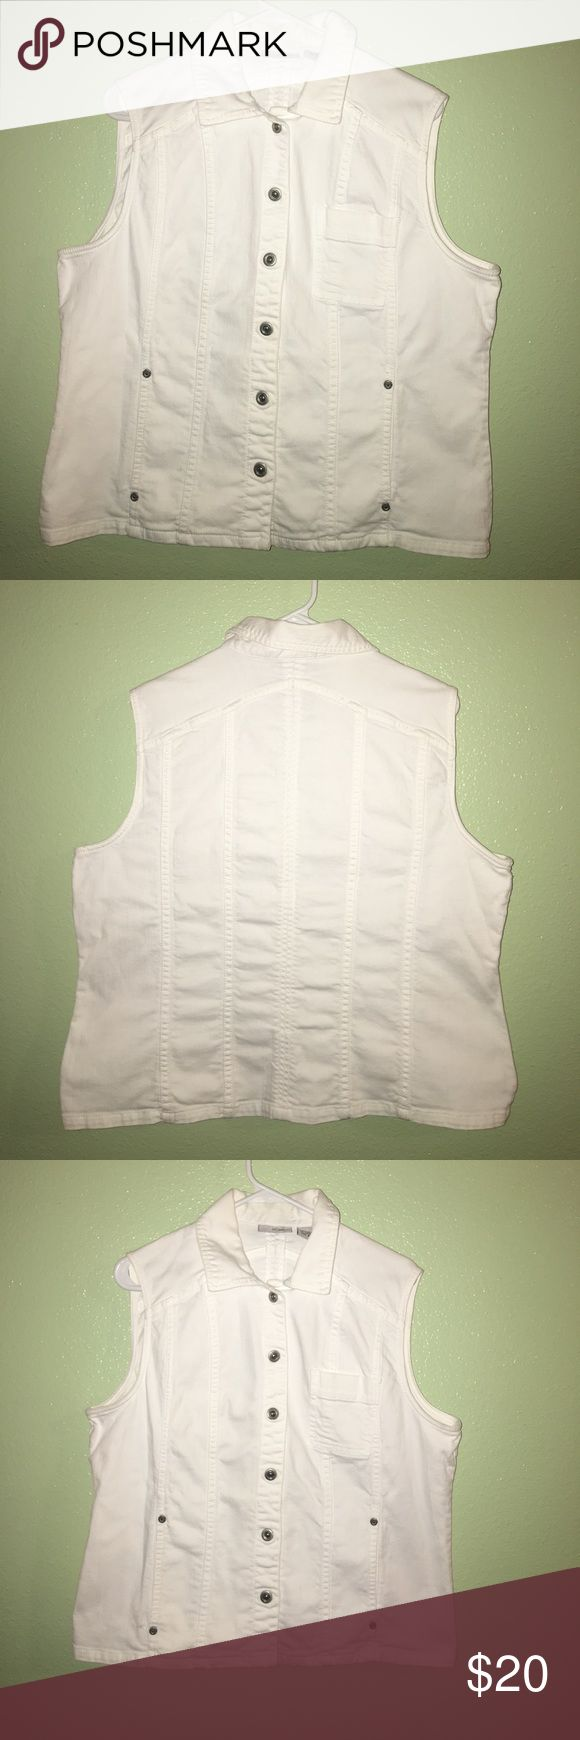 Chico's White Denim Vest 98% cotton 2% Lycra in great condition no spots or stains no holes or tears. Chico's Jackets & Coats Vests